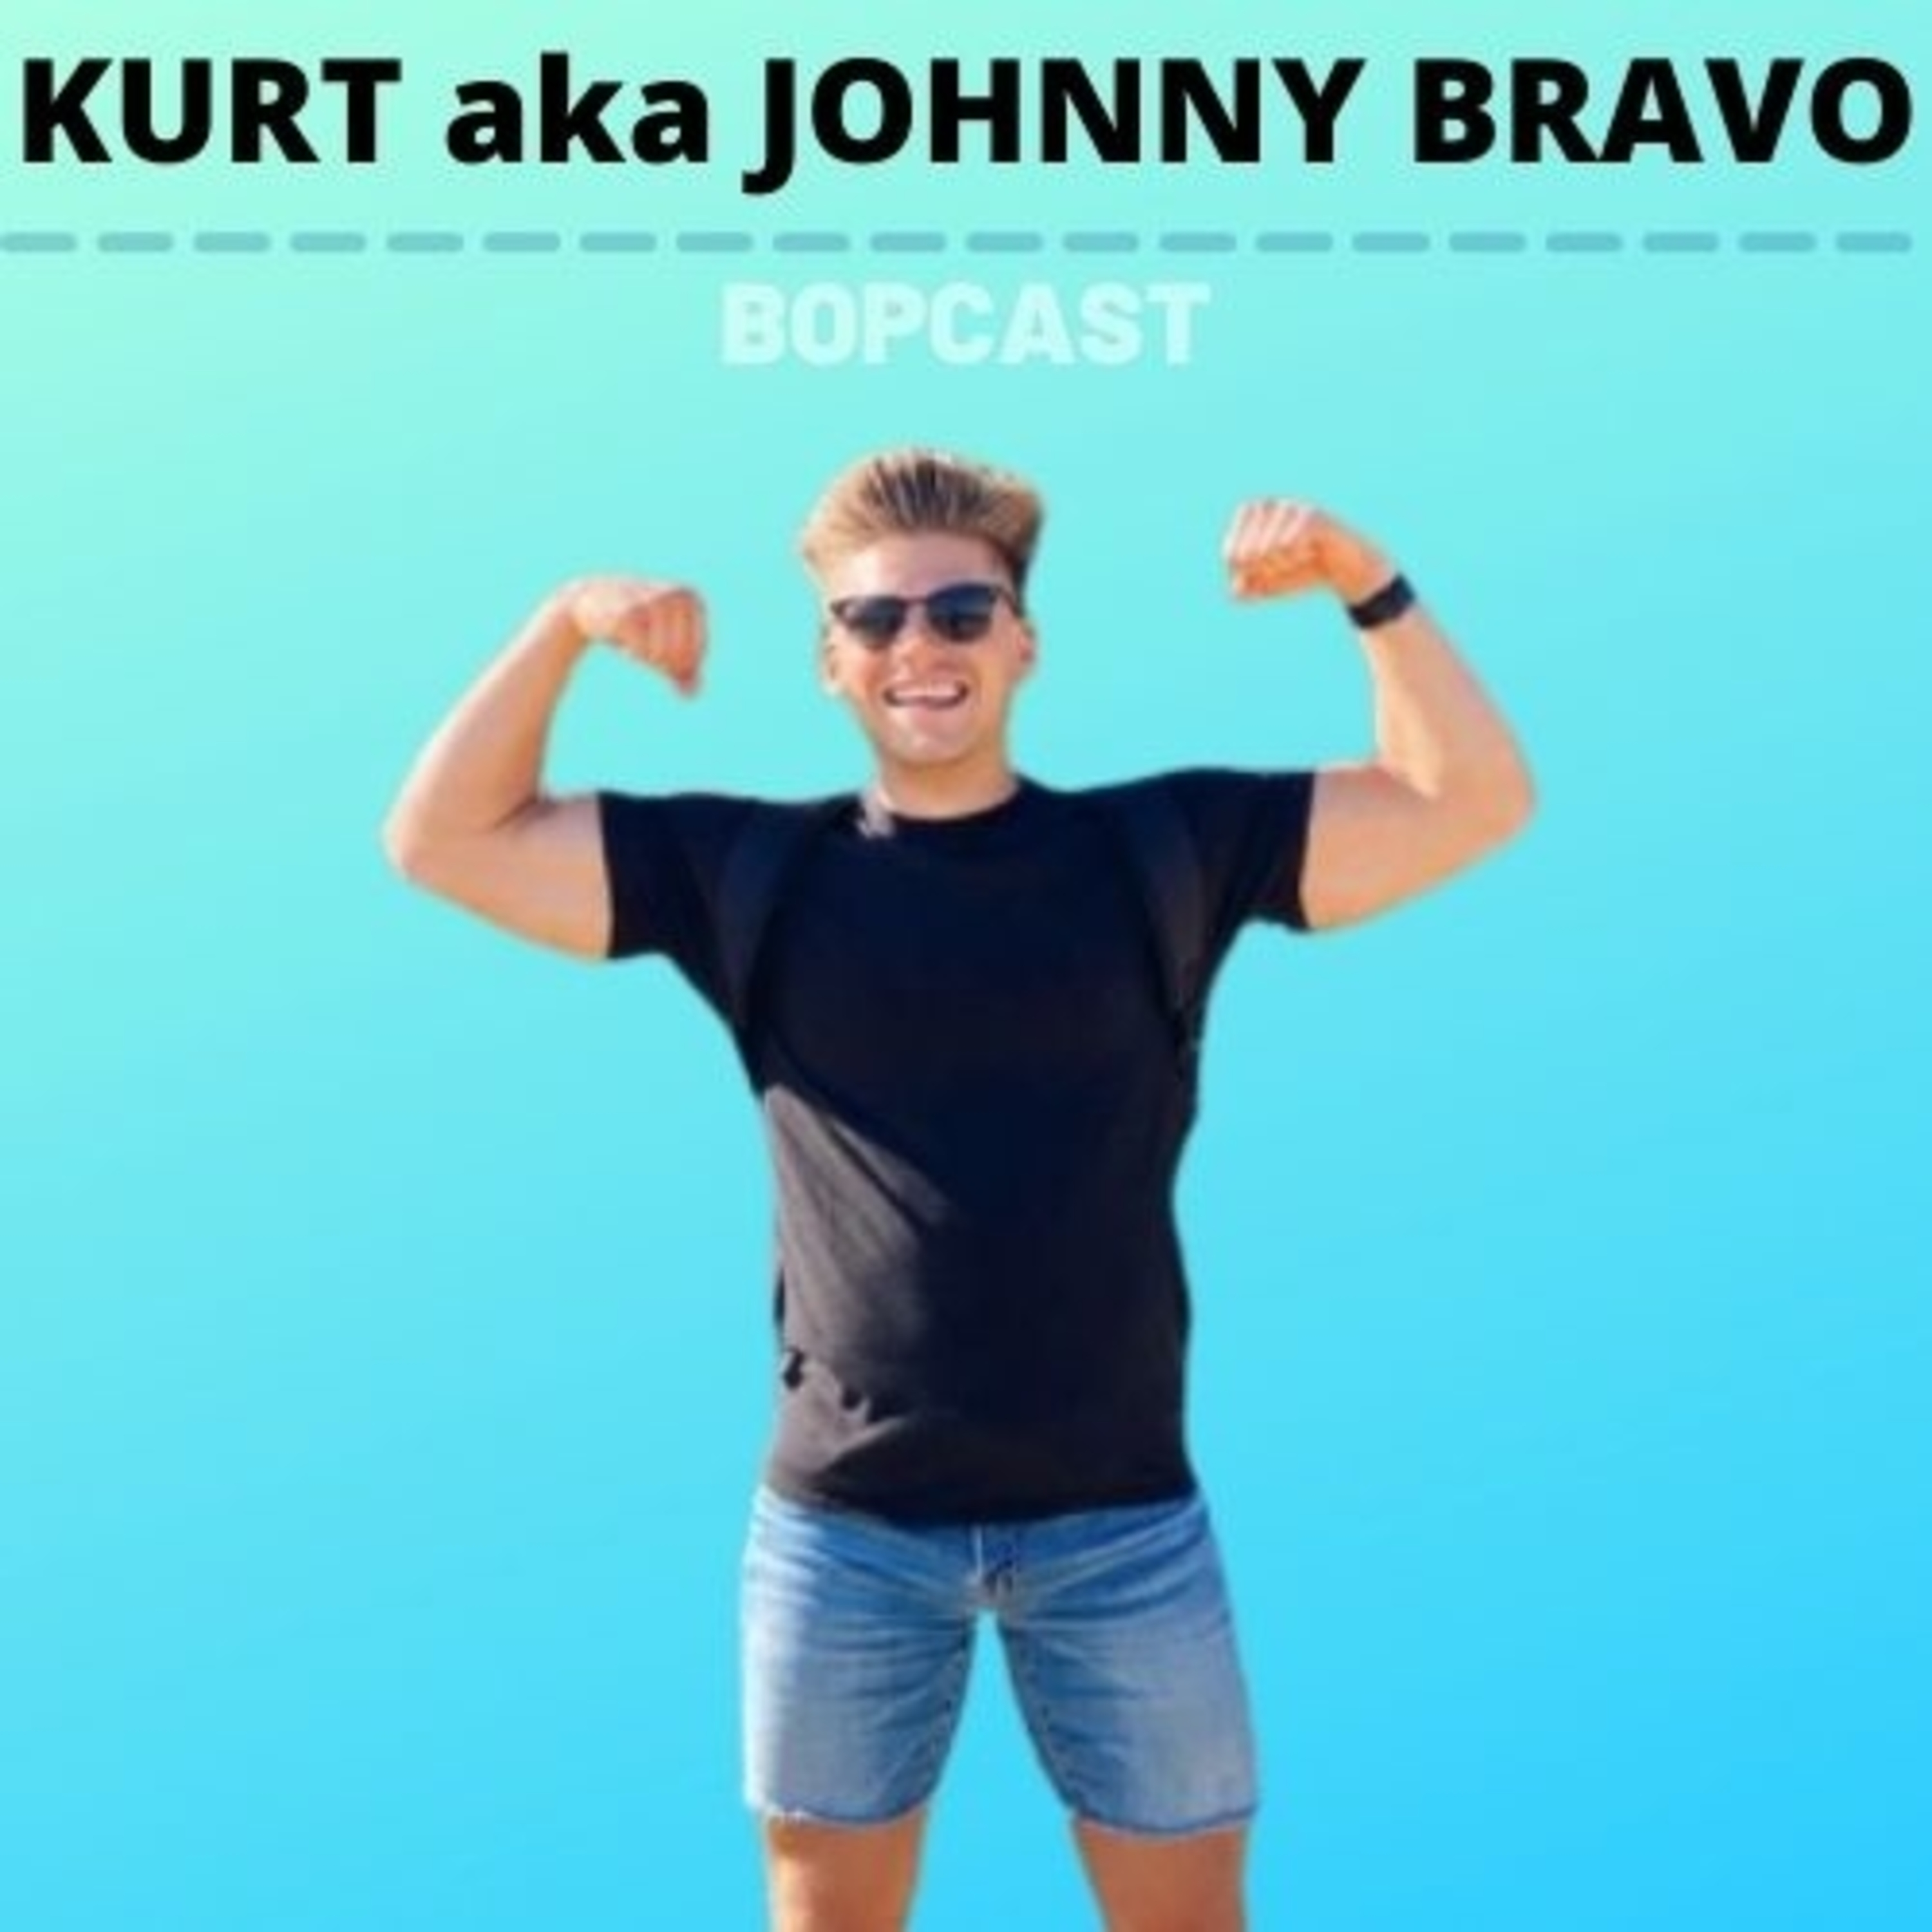 """""""The Real Johnny Bravo,"""" Kurt Heeren on Gaining 100k on TikTok, Moving to Cali., Finding a Job You Love out of College and Personal Training"""